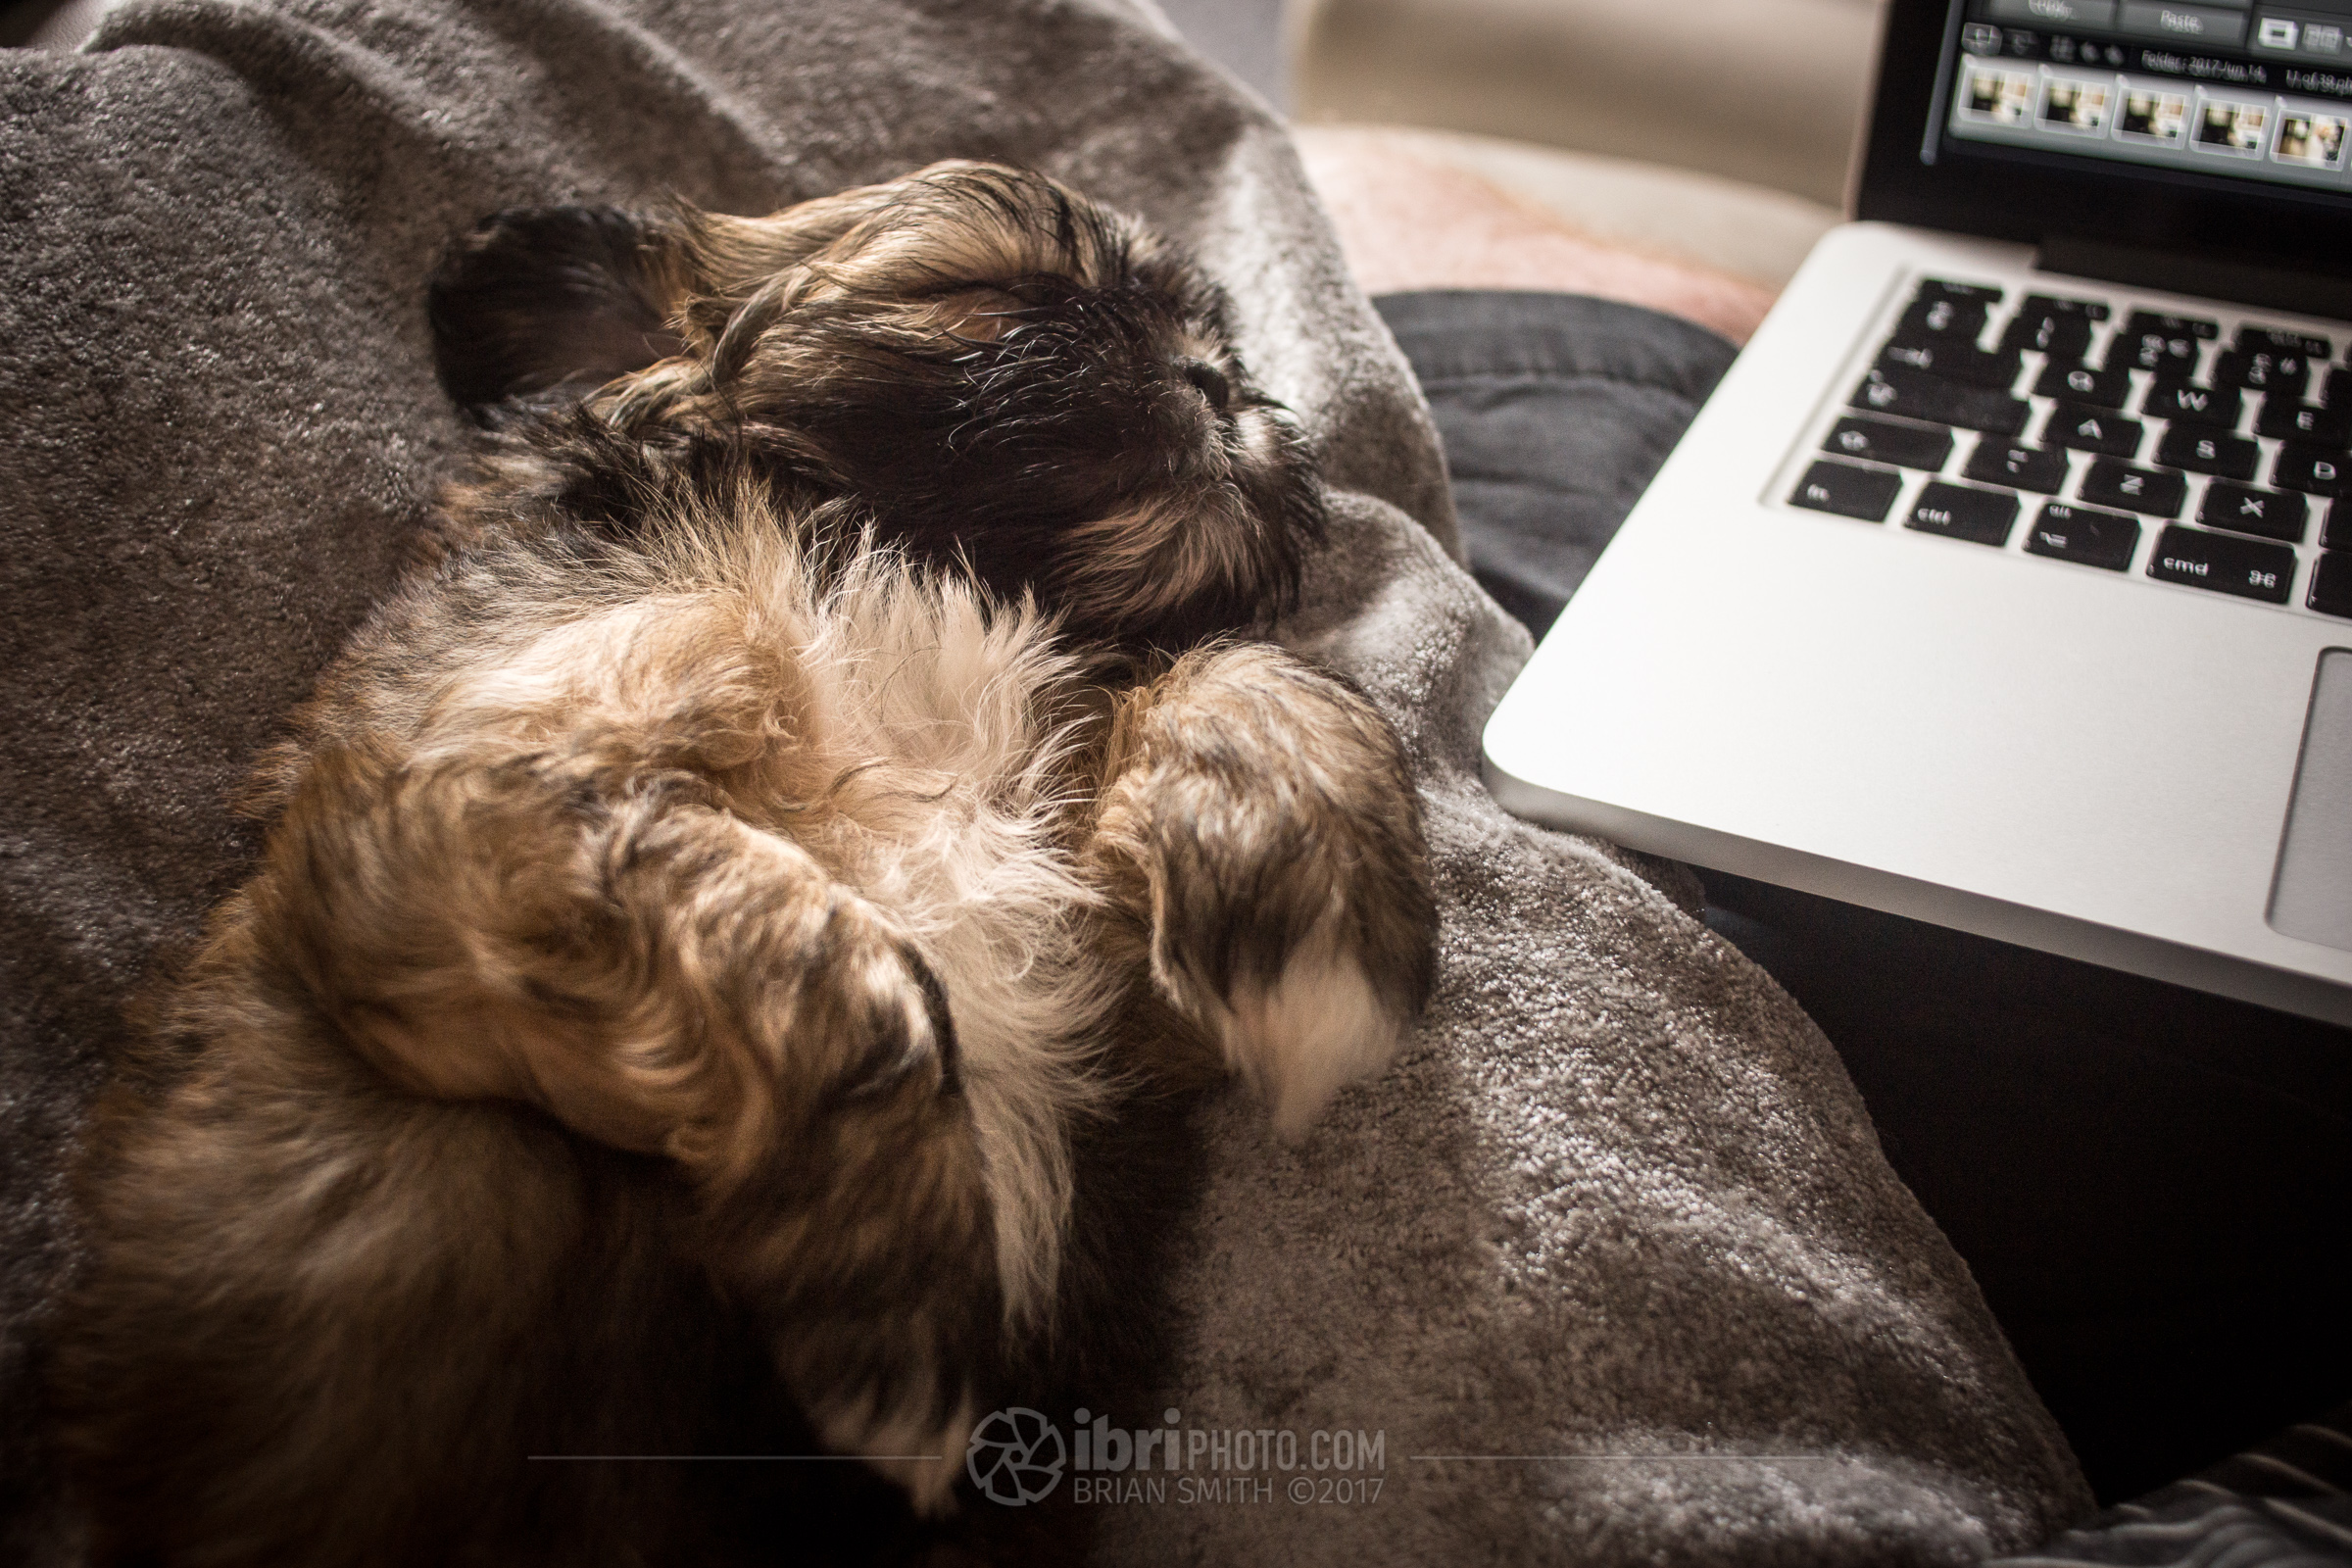 Not easy editing on the laptop with a Lhasa Apso pup parked on your lap top.